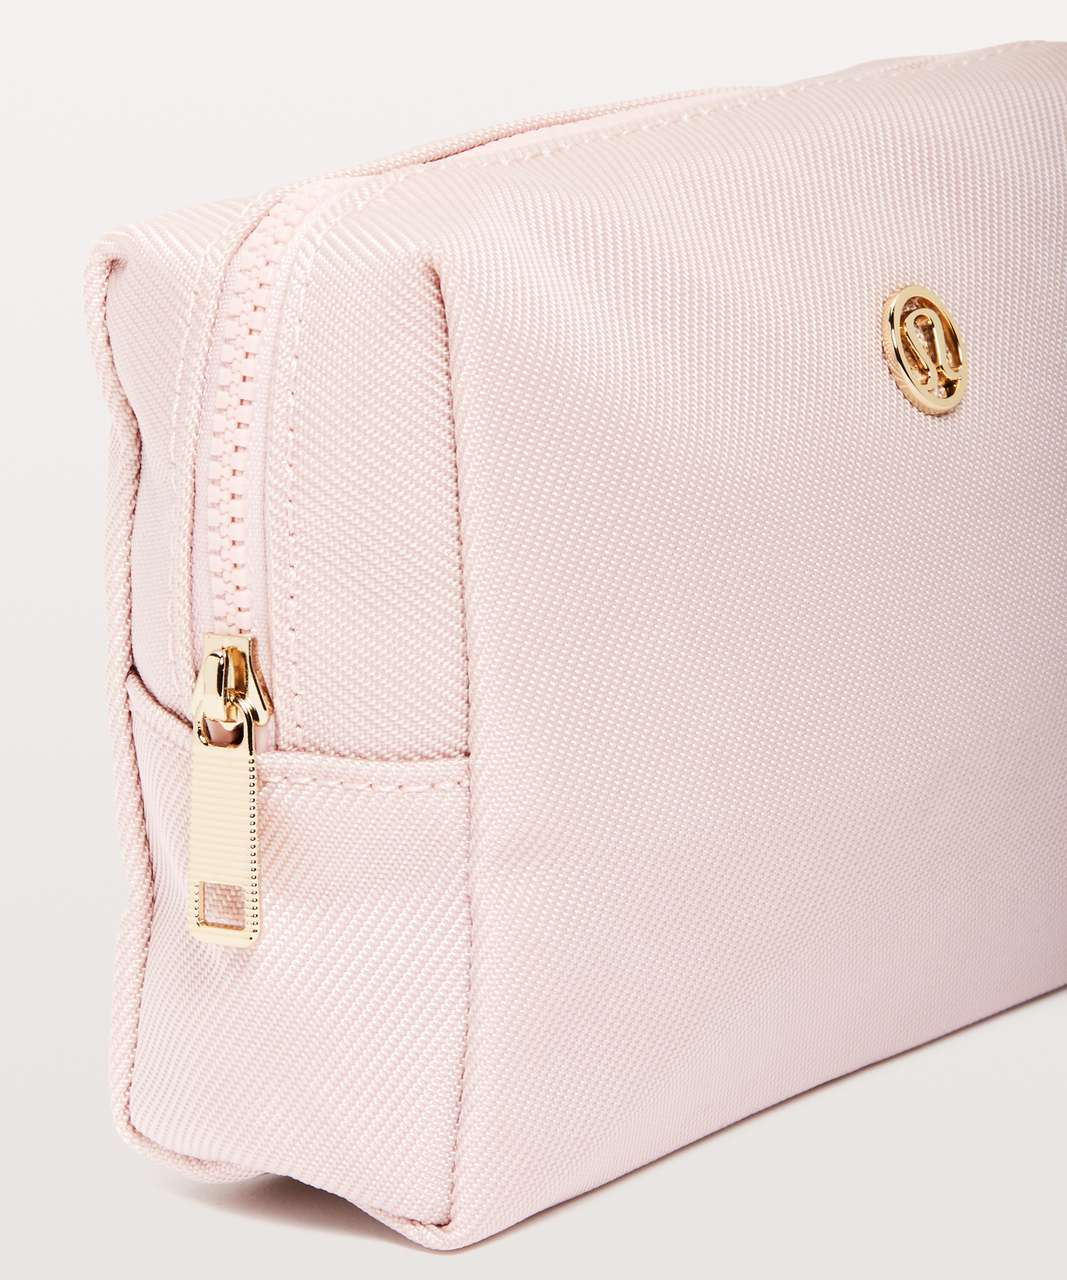 Lululemon All Your Small Things Pouch *Mini 2L - Misty Pink